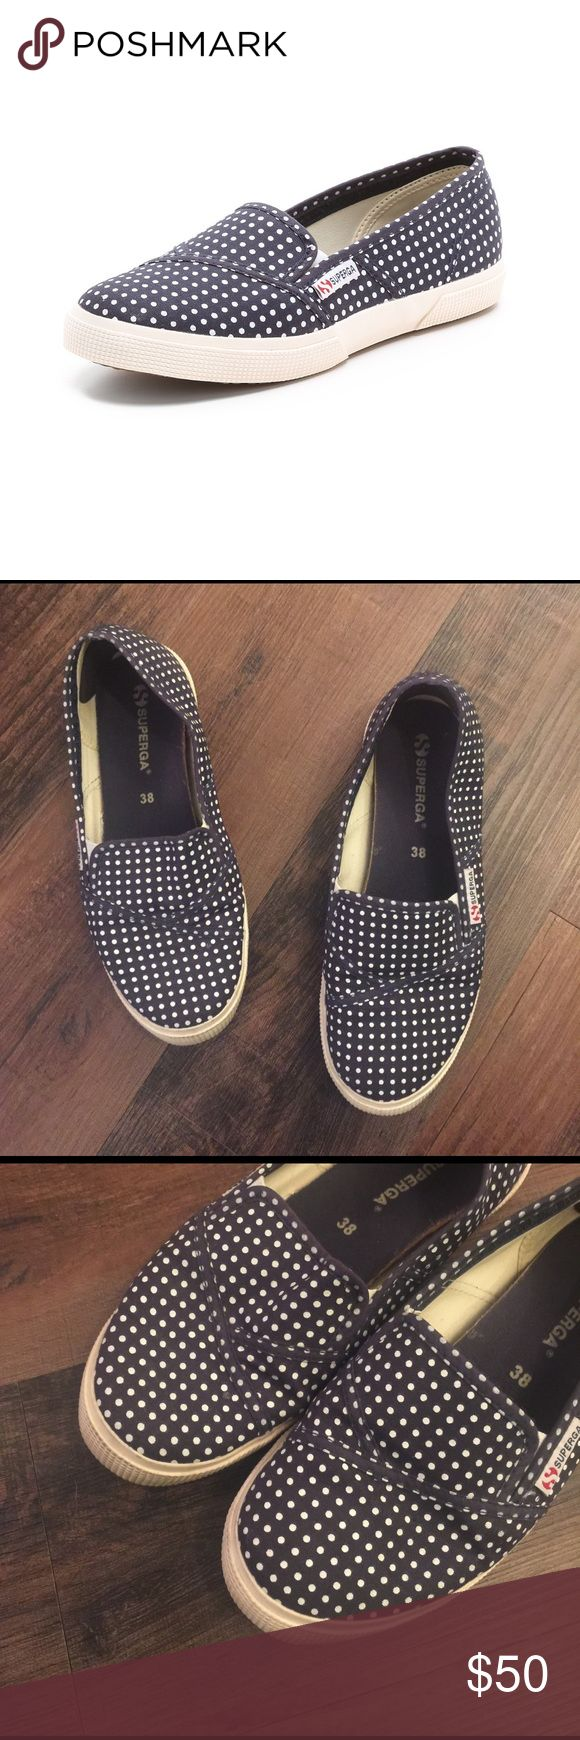 Superga Navy Blue Polka Dot Slip On Sneakers Superga Navy Blue Polka Dot Slip On Sneakers.  Some wear on the soles but overall good condition.  Size 38. Superga Shoes Flats & Loafers